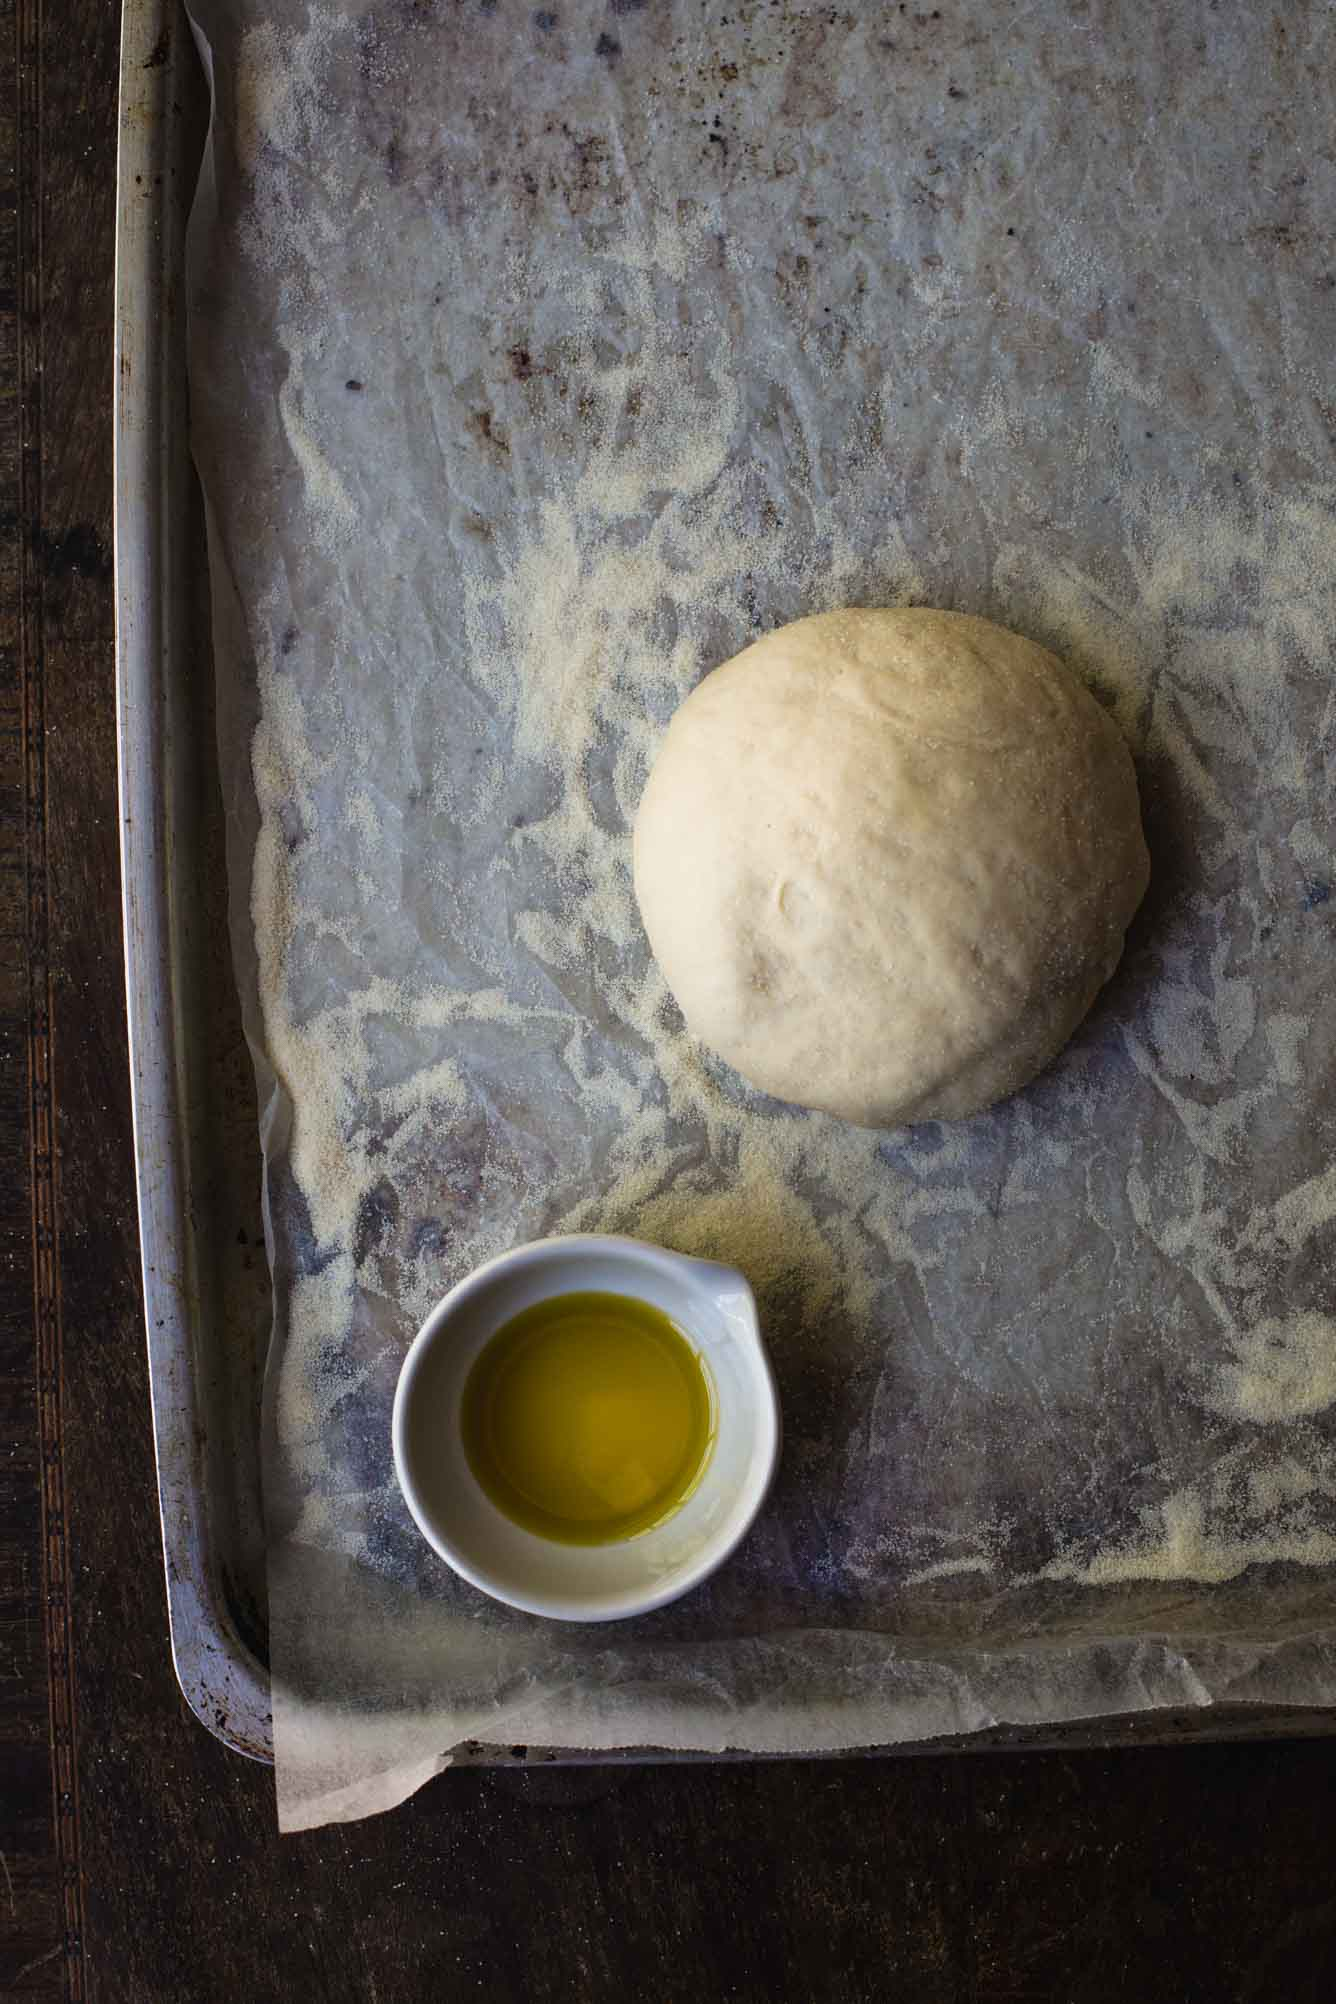 an overhead process image of a sheet pan lined with baking paper and a ball of pizza dough in the bottom left corner with a small bowl of olive oil sitting further off to the right. The baking paper is sprinkled with semolina